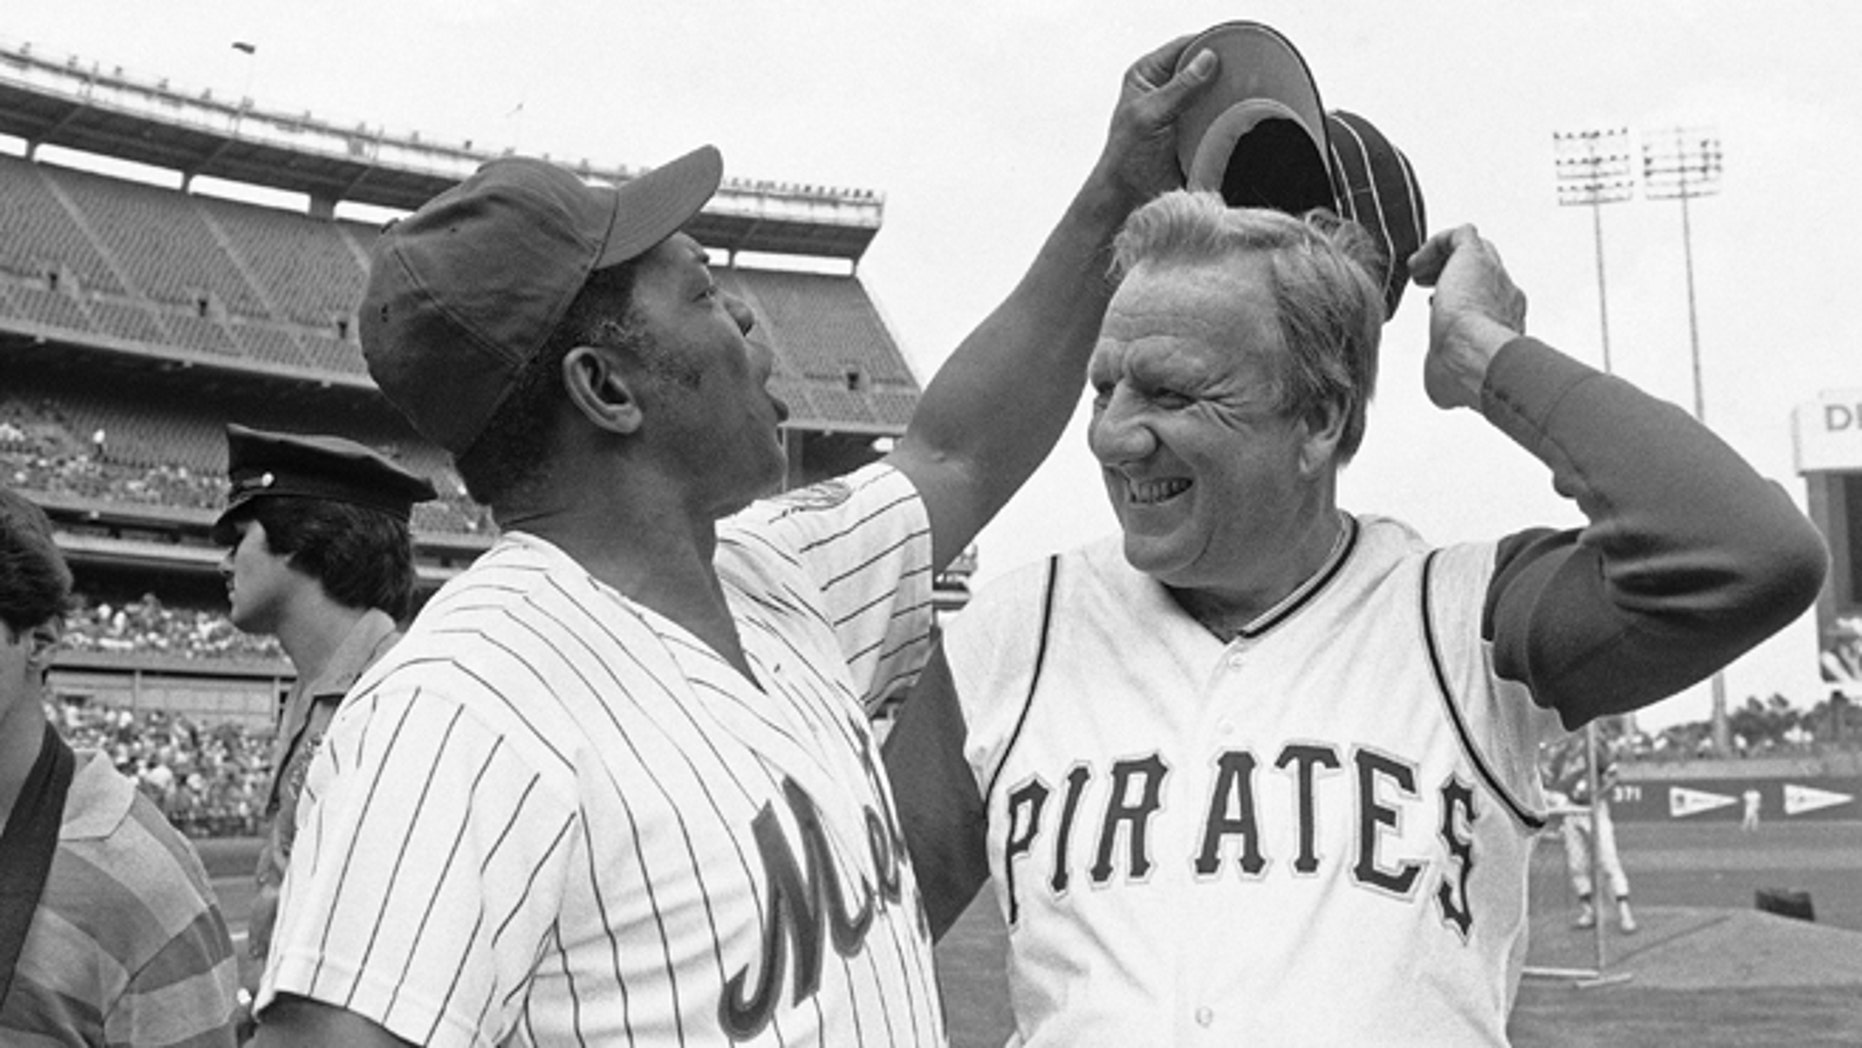 FILE - In this Aug. 14, 1982 file photo, Willie Mays tries to get Ralph Kiner's hat as the two Hall of Famers pose for pictures before the start of Old Timers Day game at Shea Stadium in New York. The baseball Hall of Fame slugger died on Feb. 6, 2014, at his home in Rancho Mirage, Calif. He was 91.